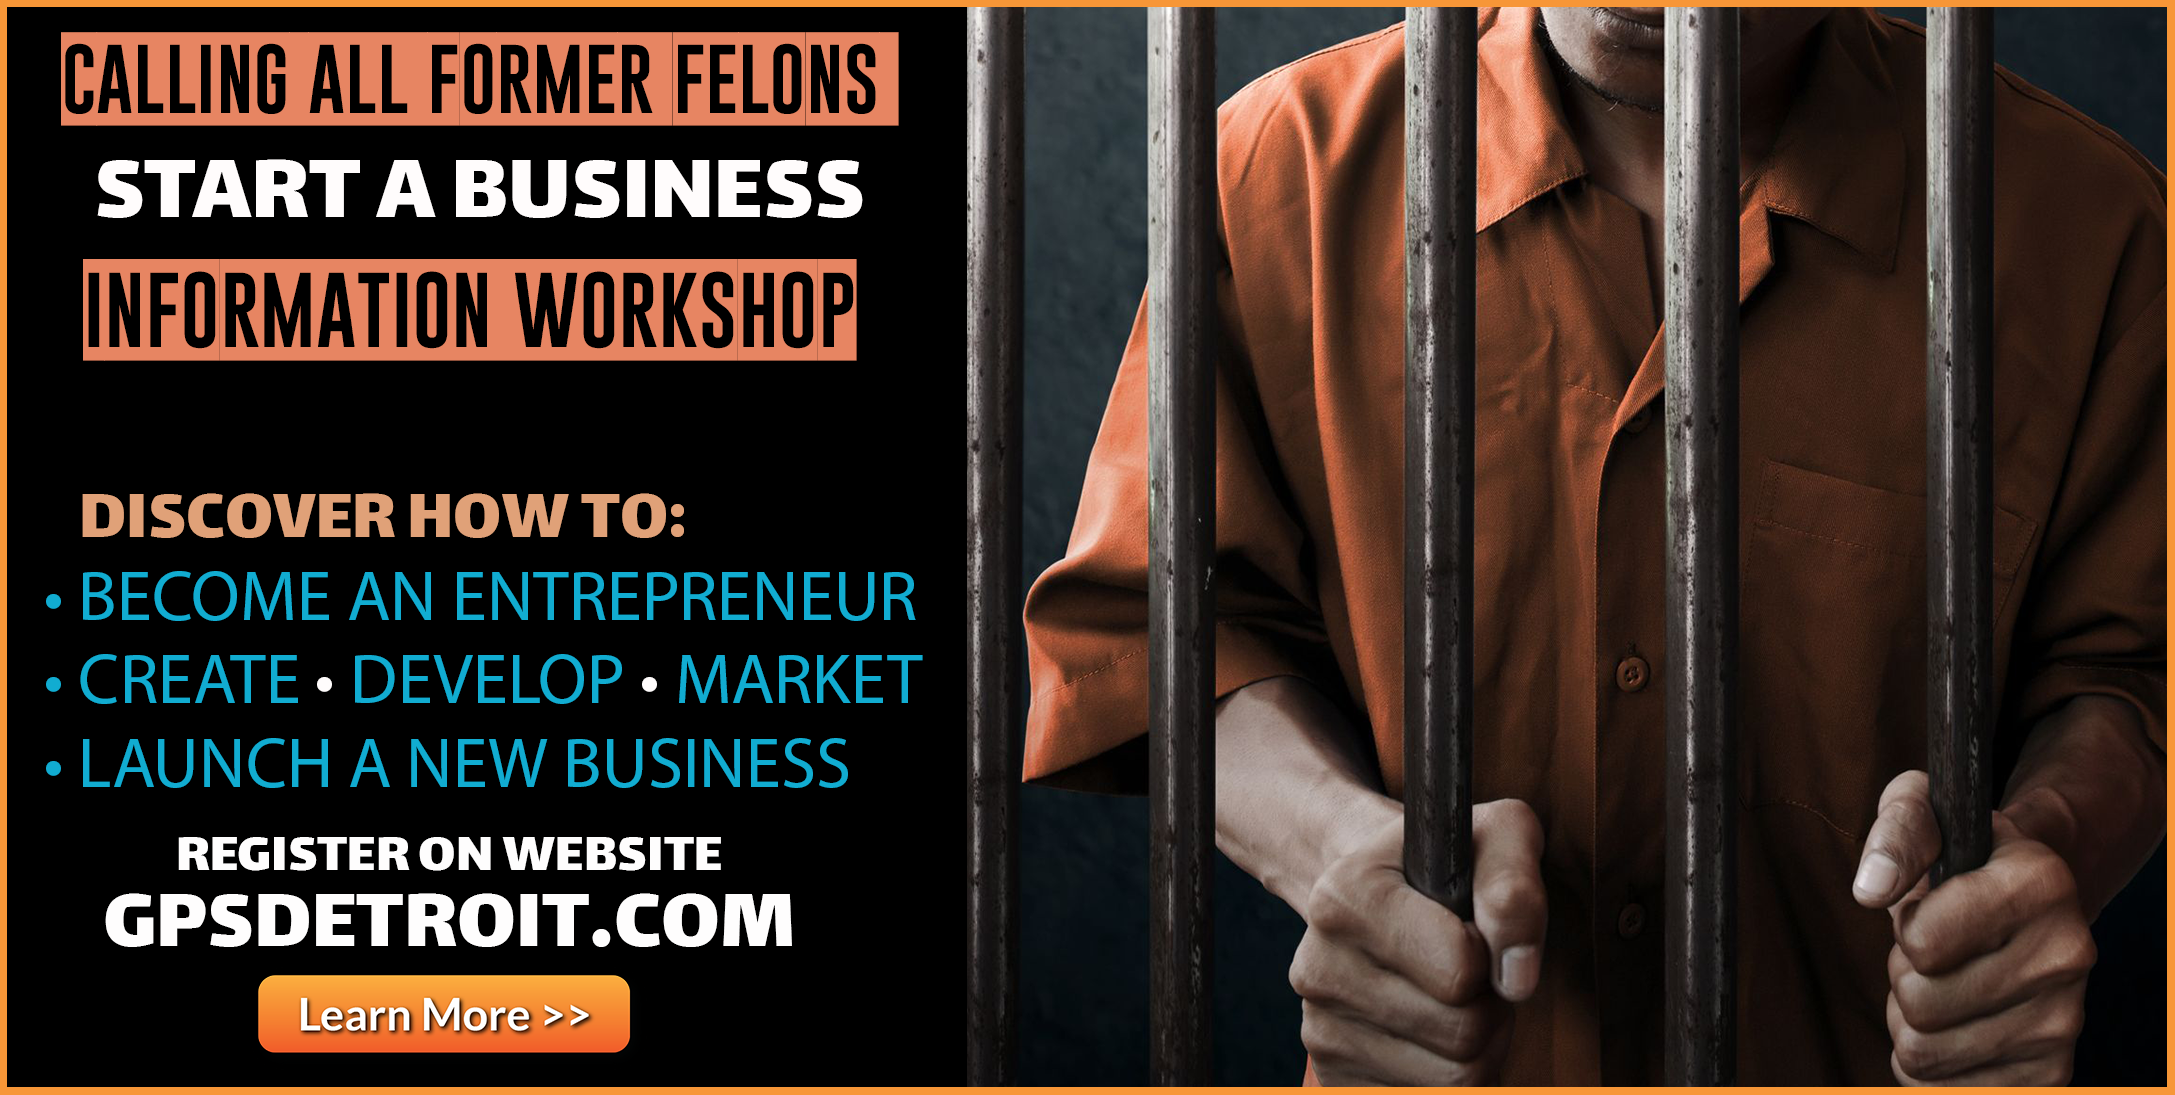 From Prisoner to Business Owners: Business Startup Workshop